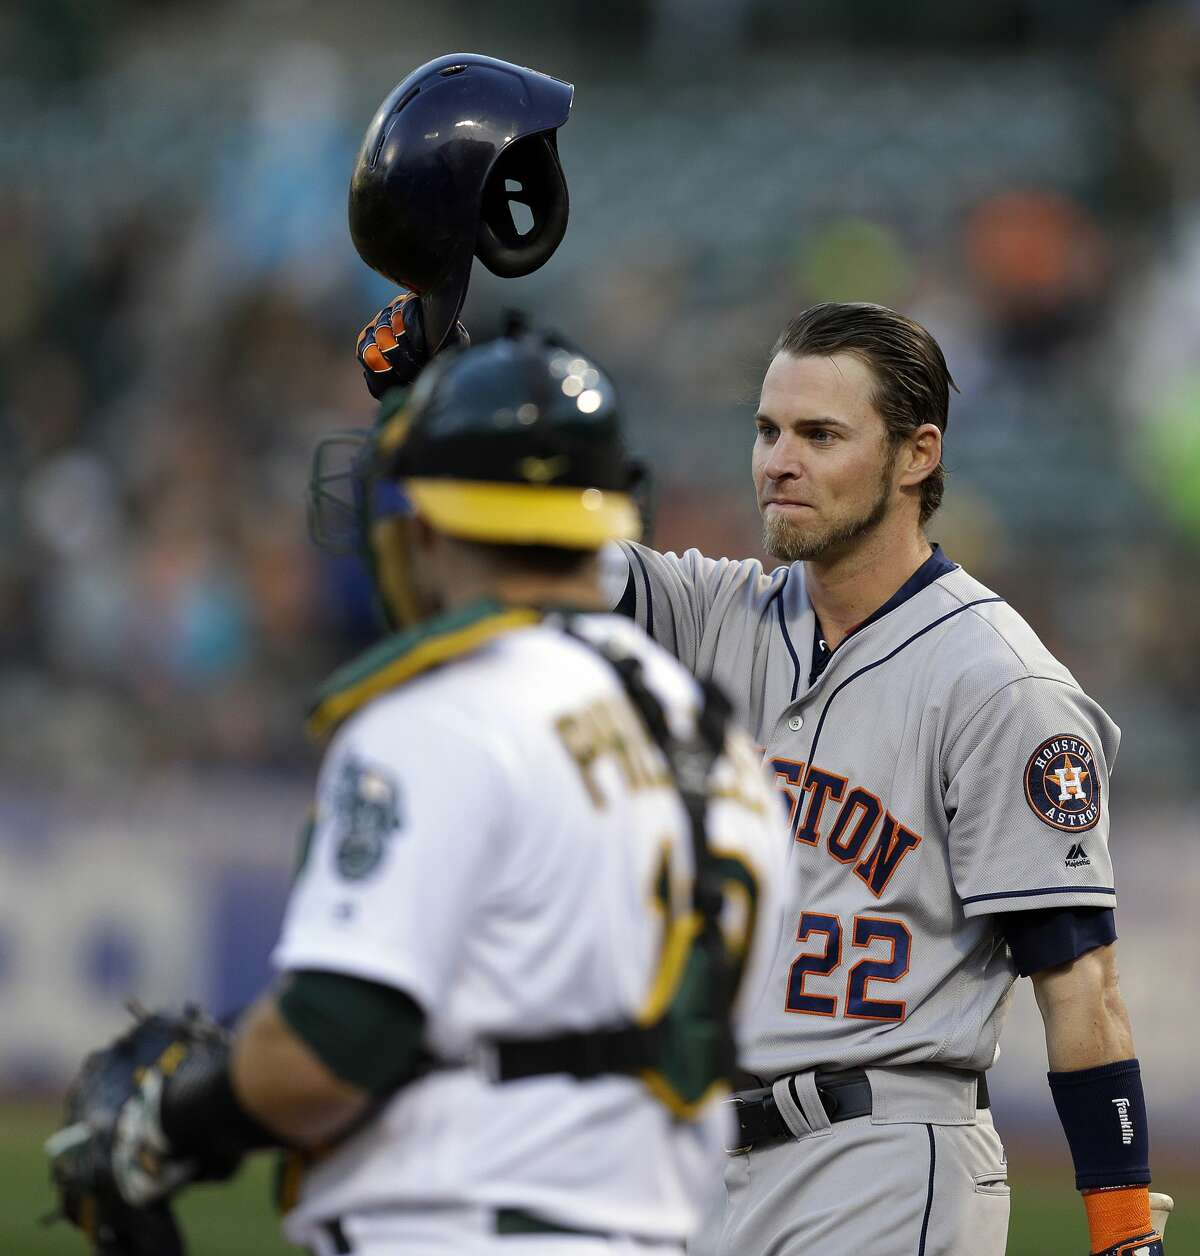 Houston Astros' Josh Reddick (22) tips his helmet to fans as he comes to bat against the Oakland Athletics in the first inning of a baseball game Friday, April 14, 2017, in Oakland, Calif. This is Reddick's first return to Oakland since July 2016, when he was a right fielder for the Athletics. (AP Photo/Ben Margot)